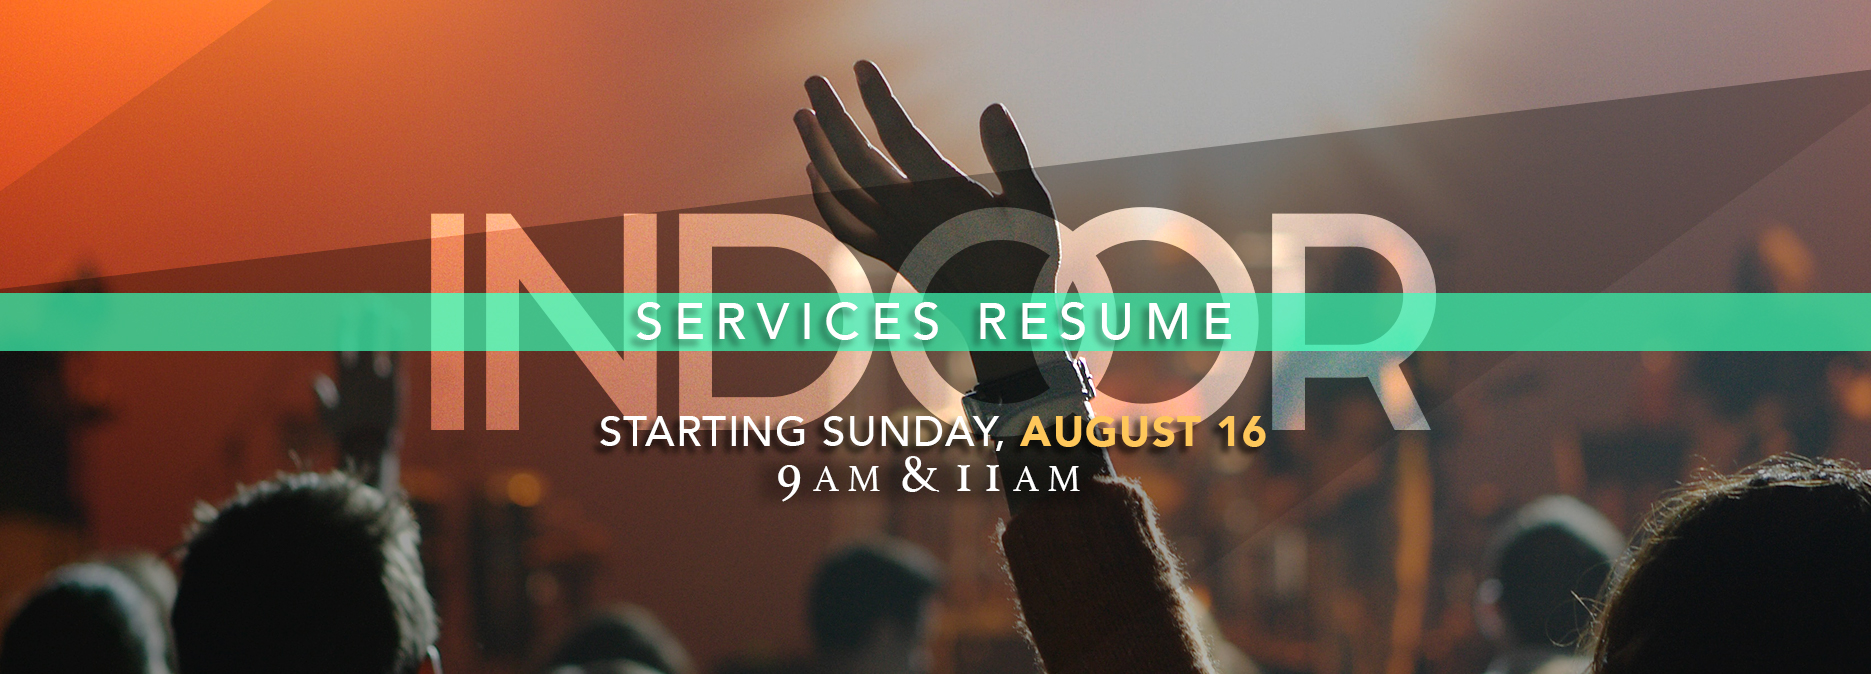 aug 16 services resume